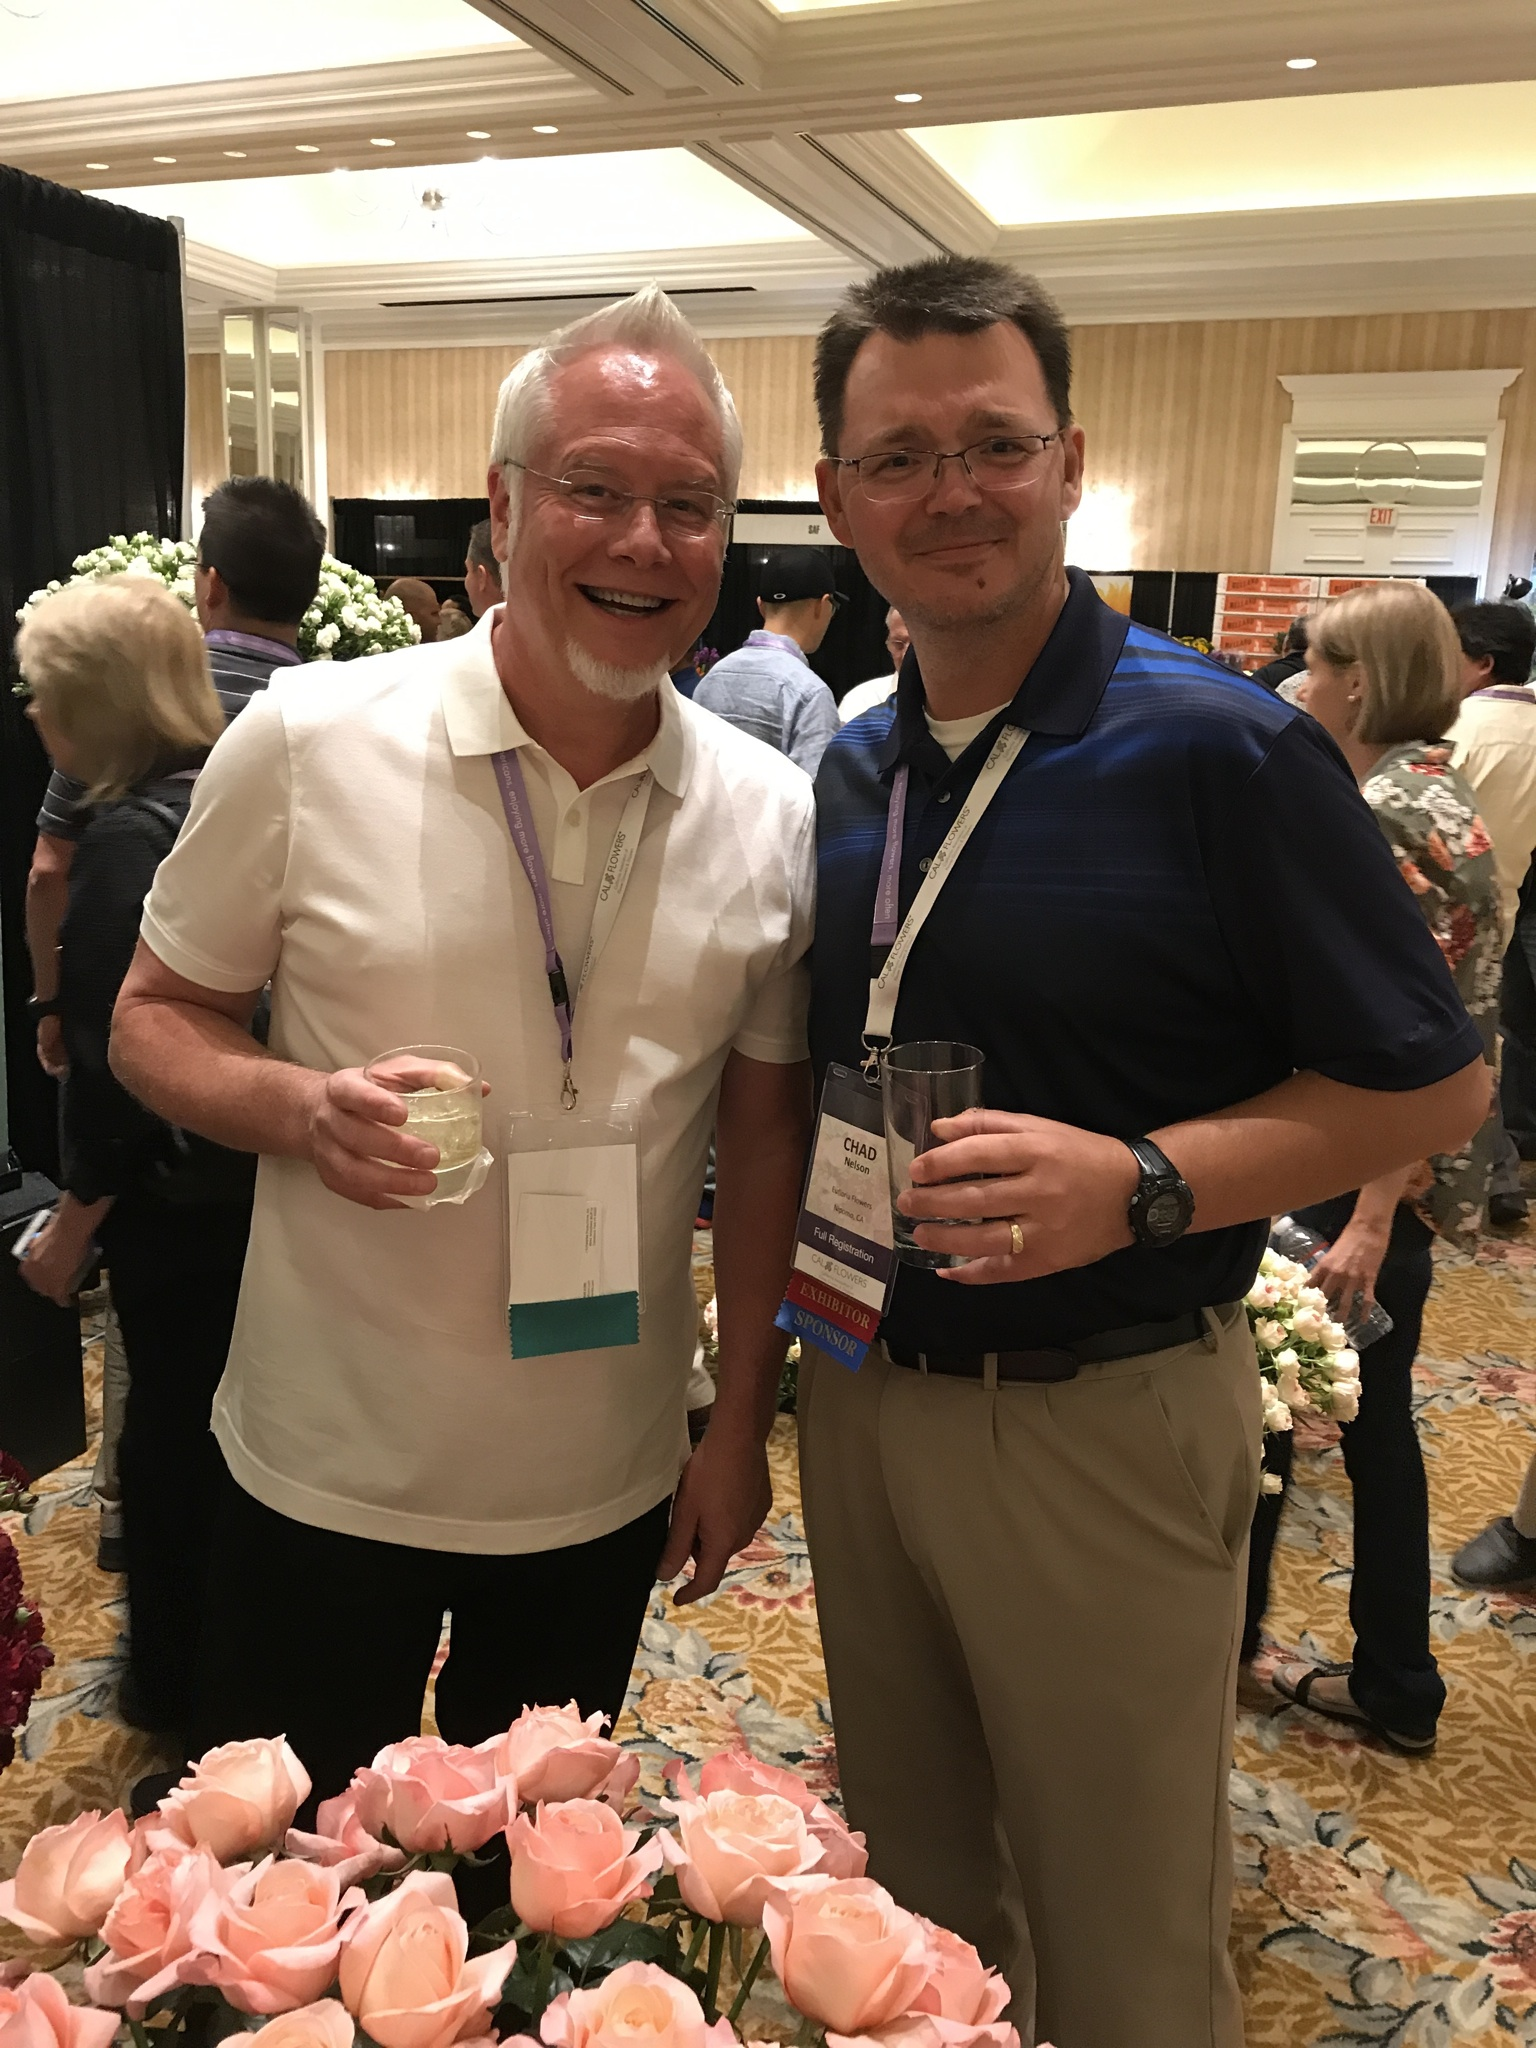 Chad from Eufloria Flowers visits with J Schwanke at the Fun N Sun Convention